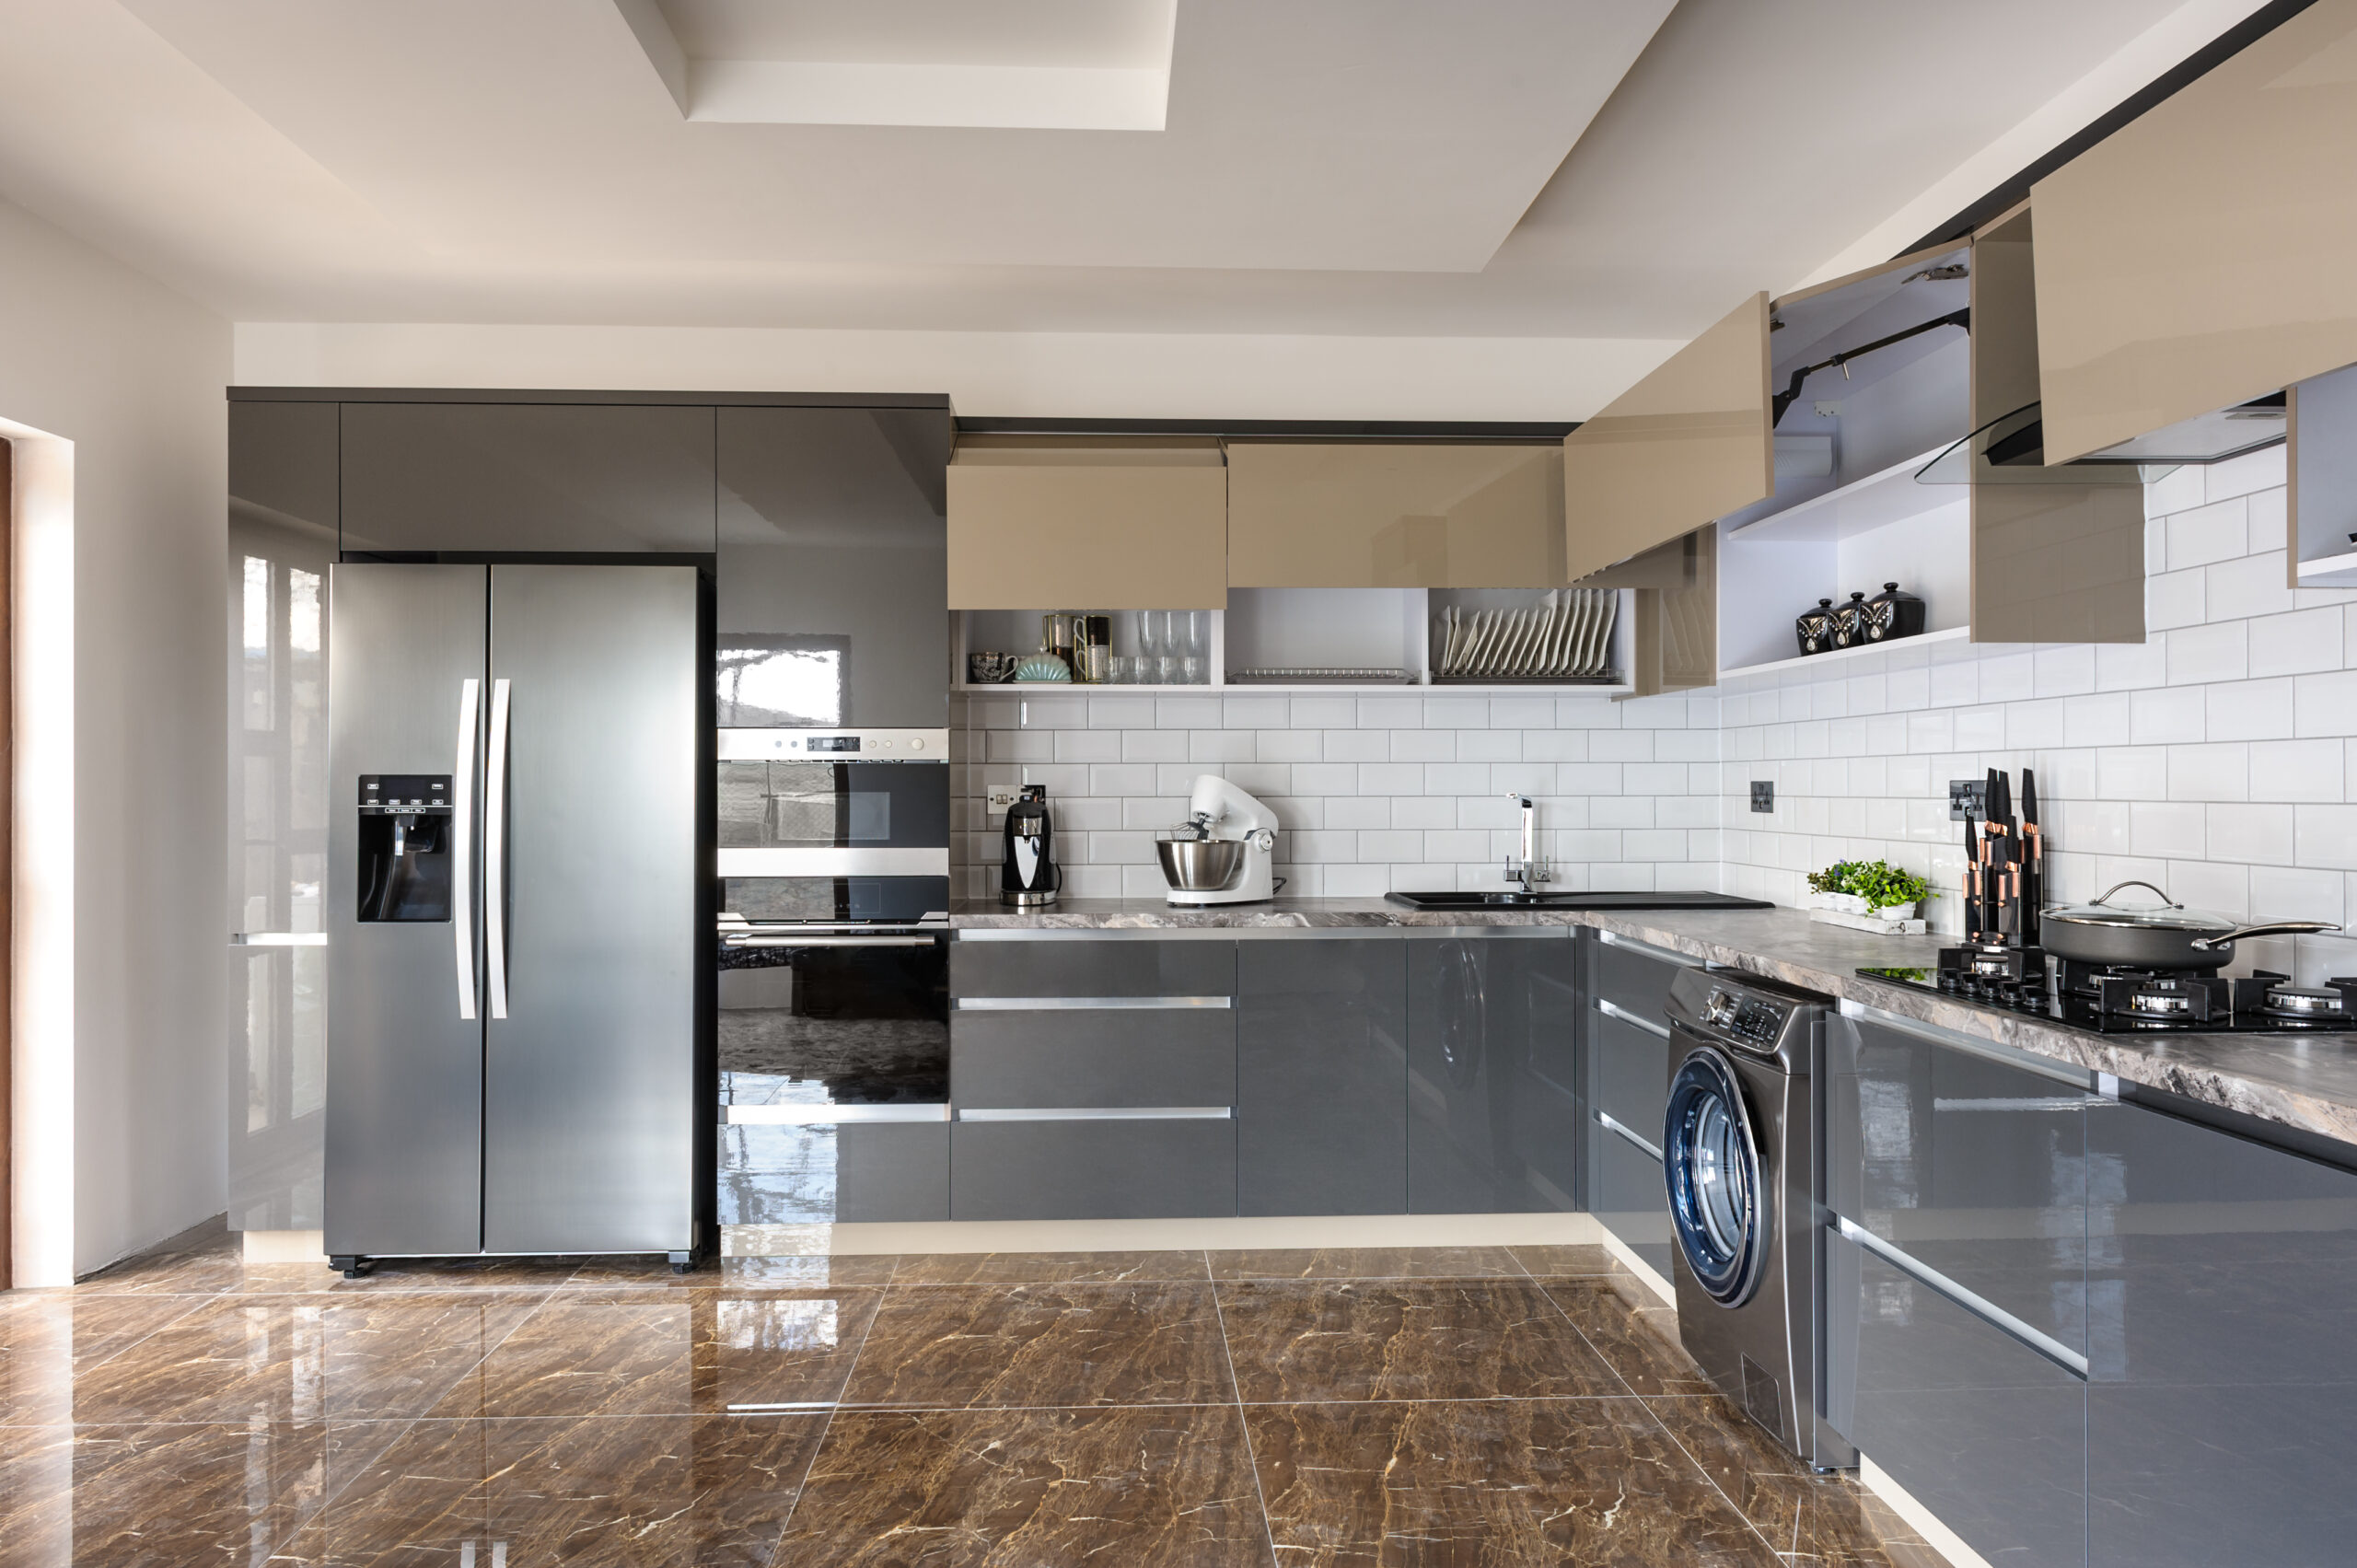 luxury modern home with upgraded appliances to maximize the value of your home before selling it